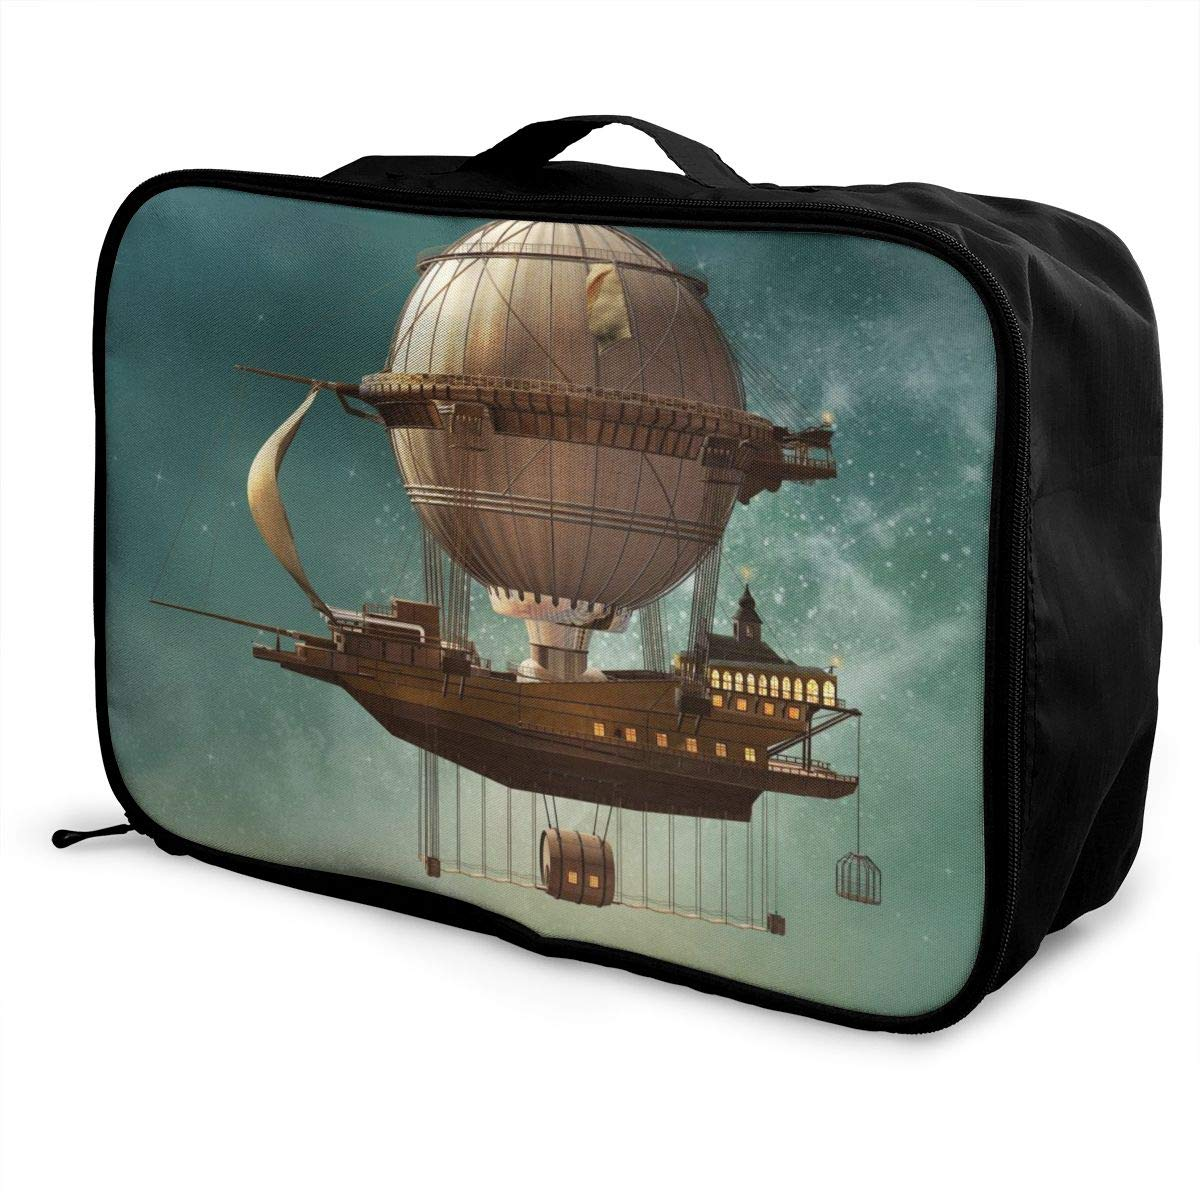 Surreal Sky Scenery With Steampunk Airship Travel Lightweight Waterproof Foldable Storage Portable Luggage Duffle Tote Bag Large Capacity In Trolley Handle Bags 6x11x15 Inch